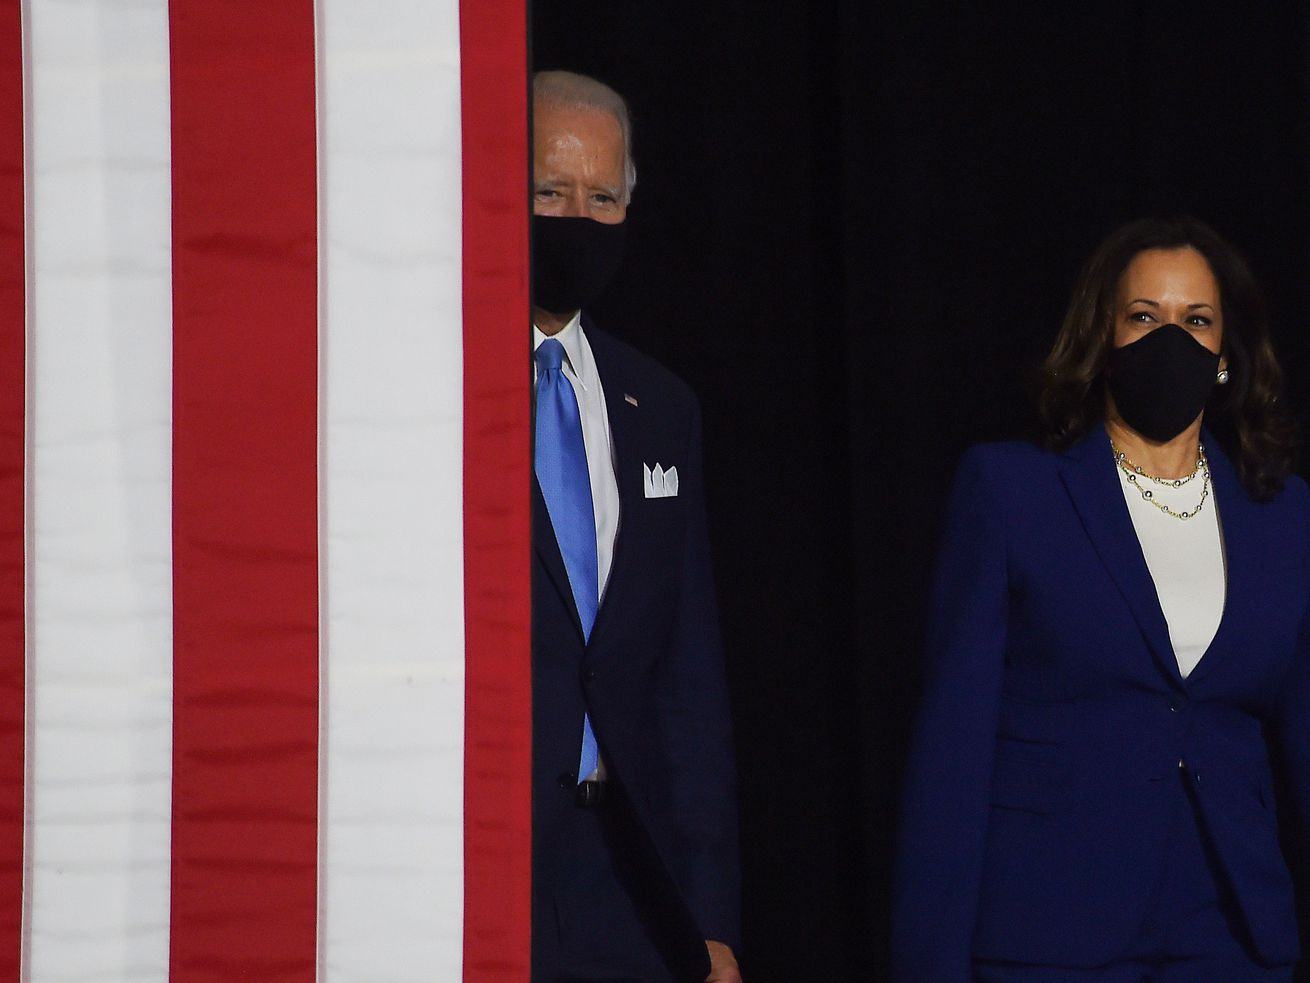 Joe Biden and Kamala Harris walking out from behind a flag-stripped banner.